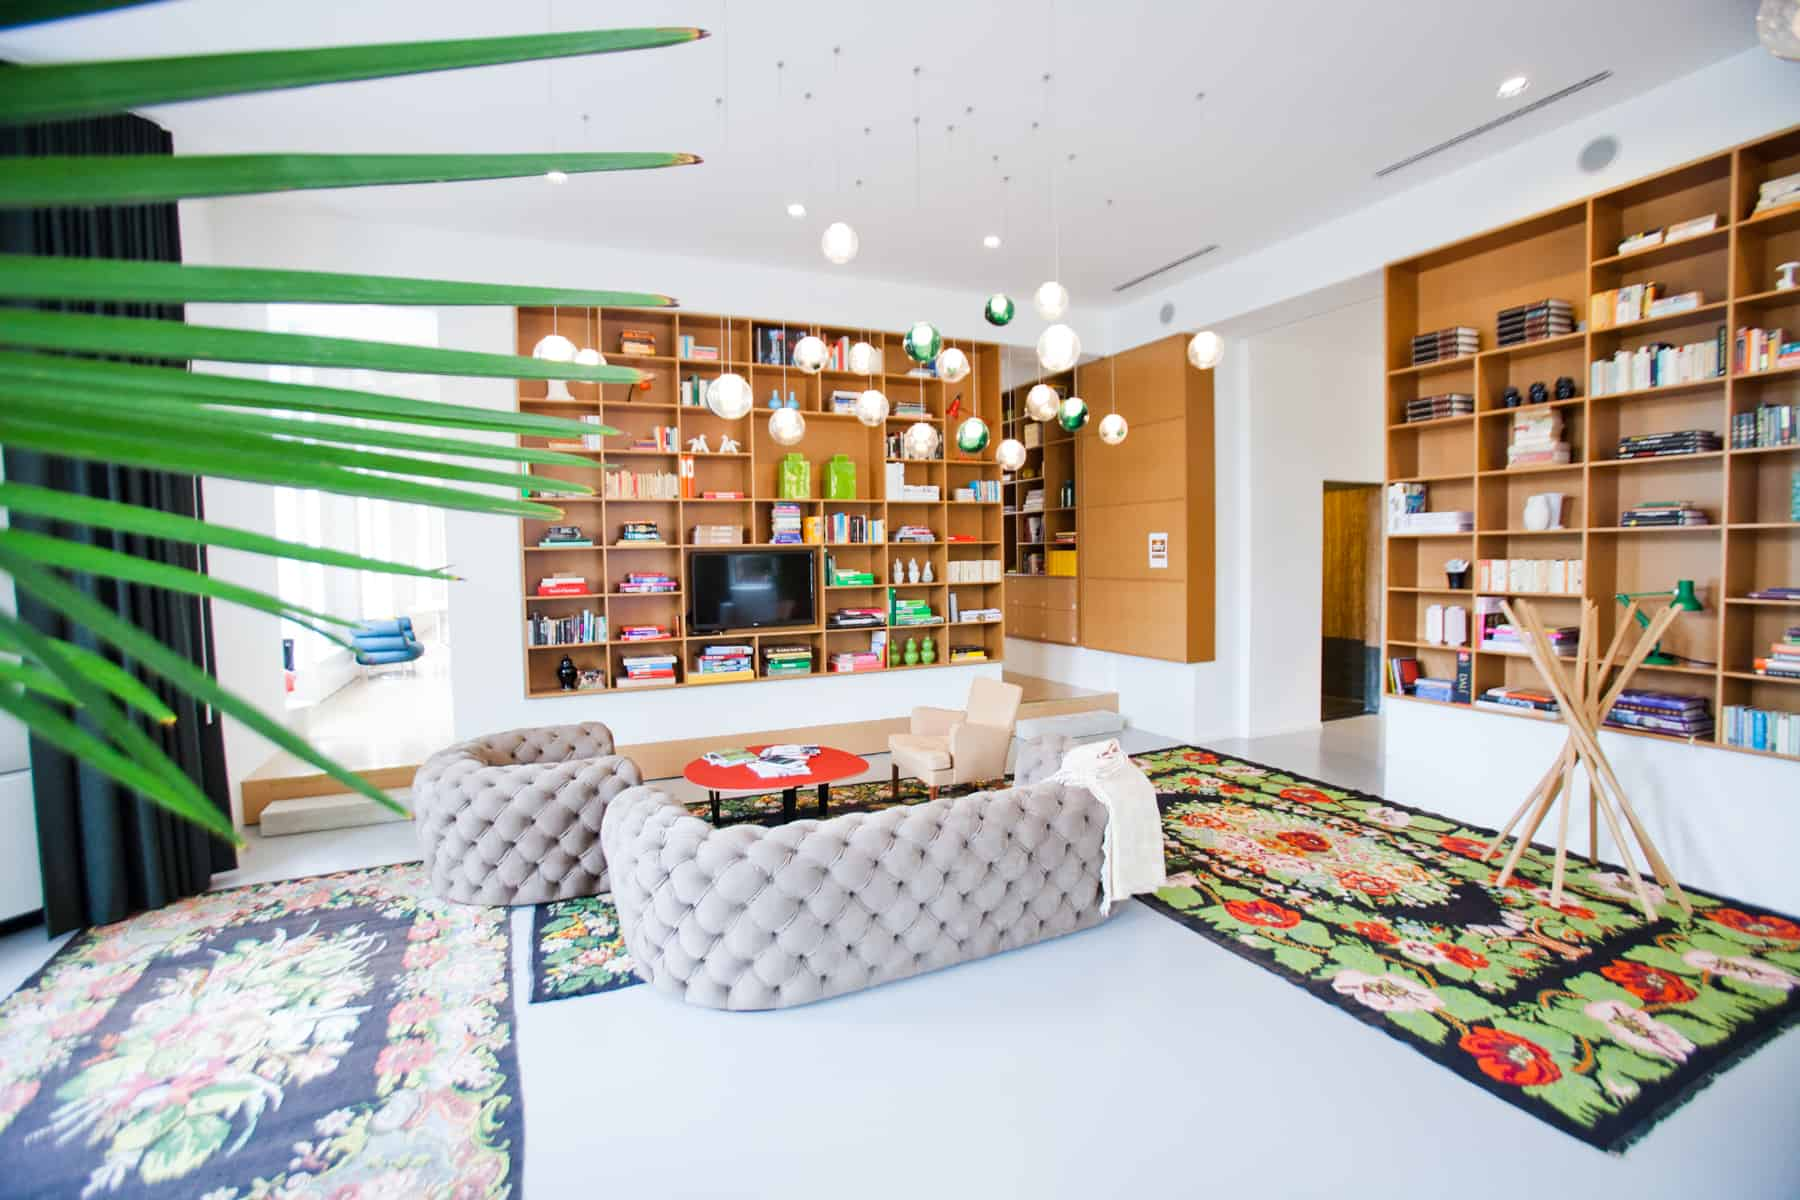 Clubroom bookcases Spaces Rode Olifant Den Haag